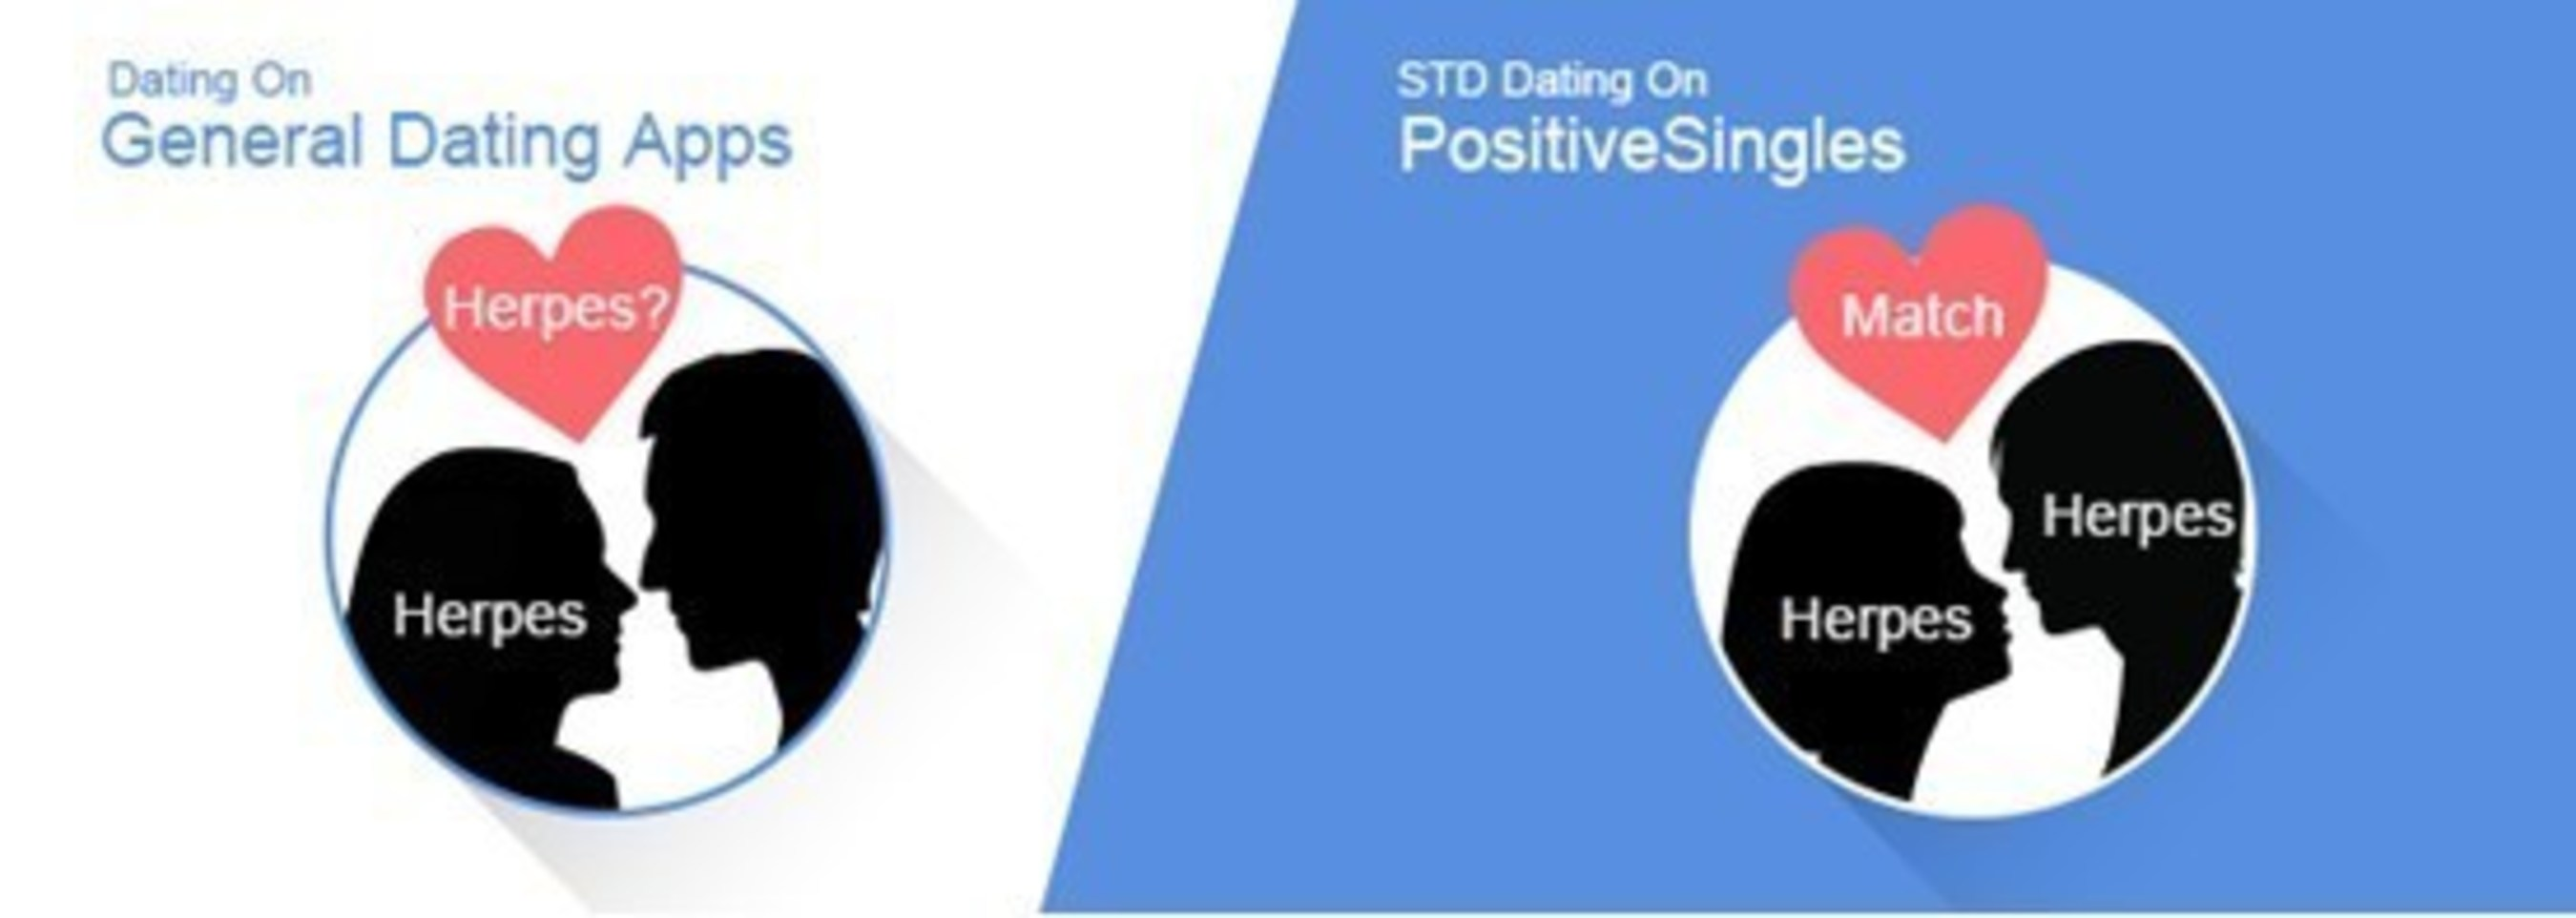 71.8% of People Don't Think Tinder Should Be Blamed For STD Rise, According  To ...